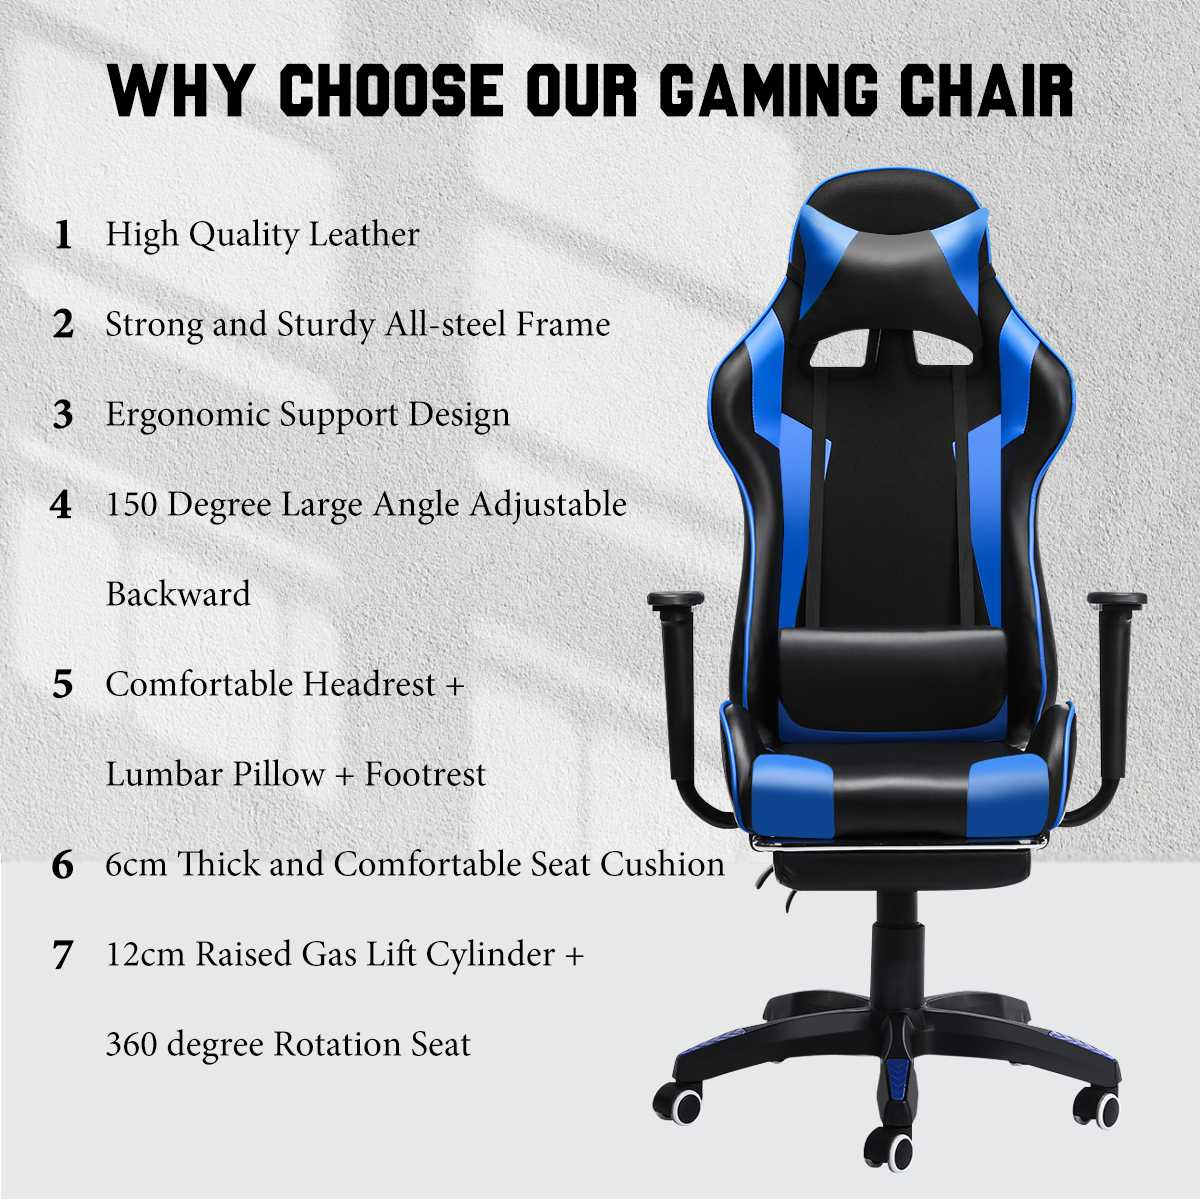 H90c40f364dce46a8a20e6ebc81beffe1h - 155° Gaming Chairs with Footrest Ergonomic Office Chair Adjustable Swivel Leather High Back Computer Desk Chair with Headrest